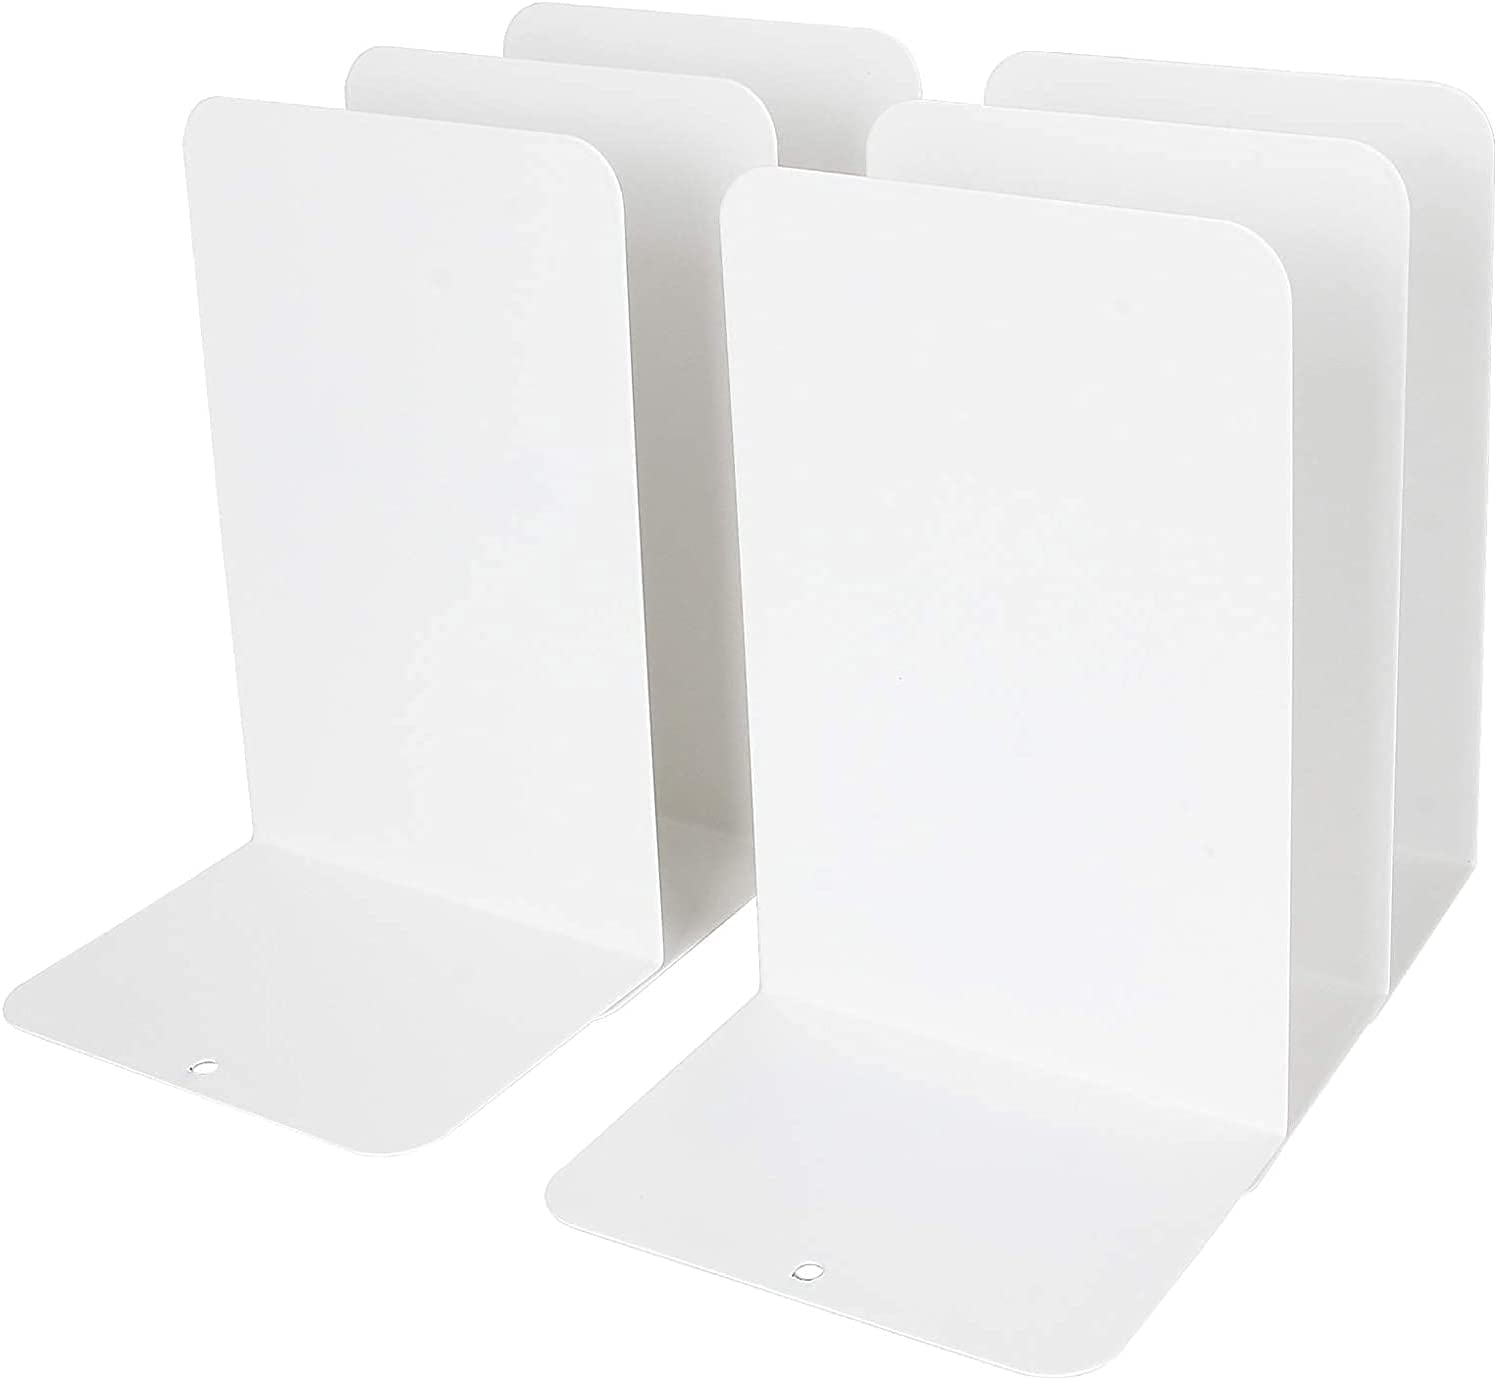 Acrux7 White Metal Bookends 8x4x5.3 Inch, Heavy Duty Premium Book Ends for Shelves, Nonskid Book Holders for Books Notebooks Files Magazines DVDs - Great for Office, Home, School, Dorm